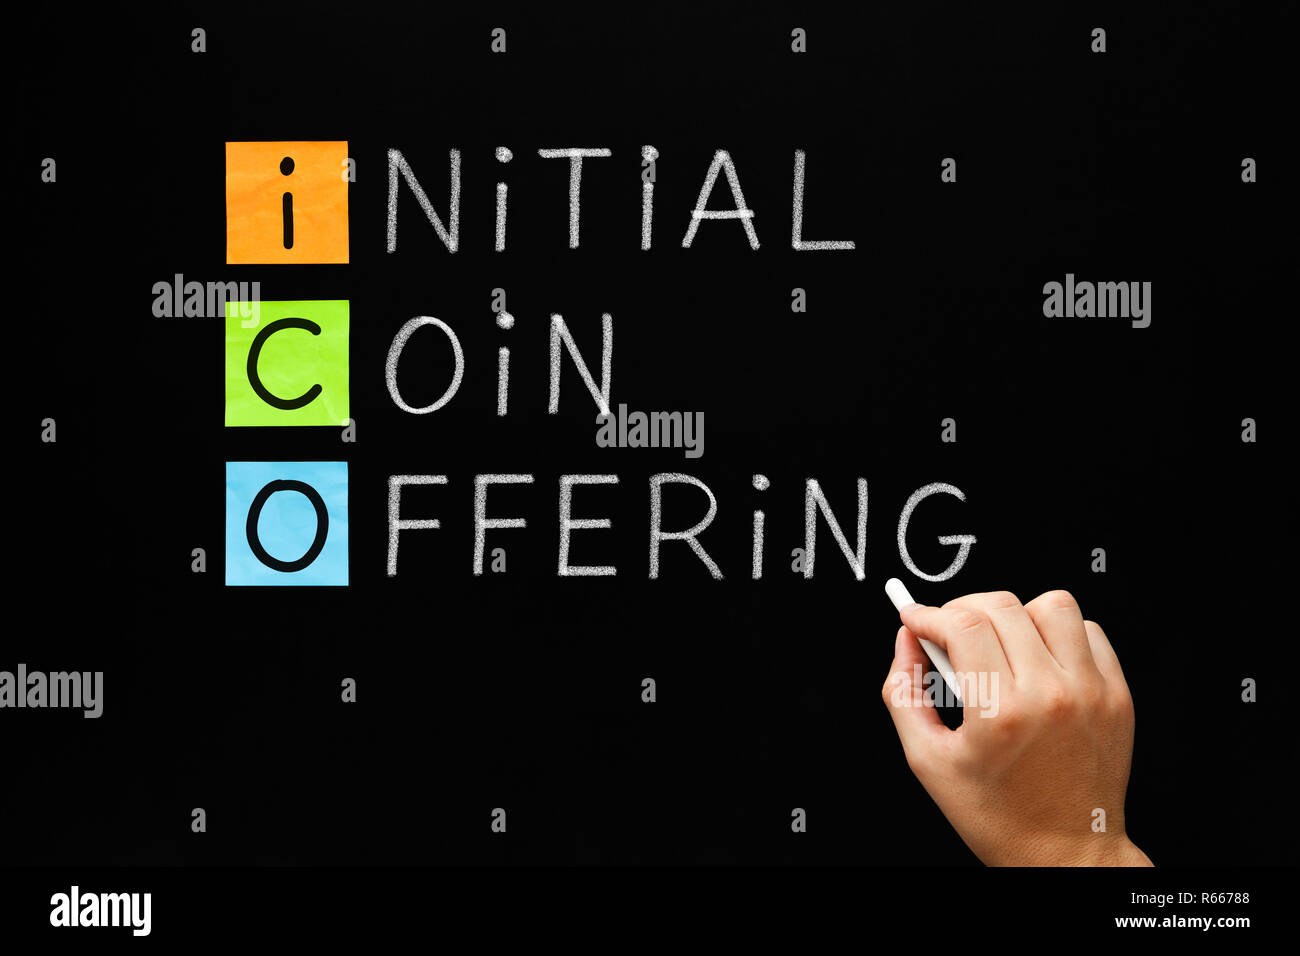 ICO - Initial Coin Offering - Stock Image